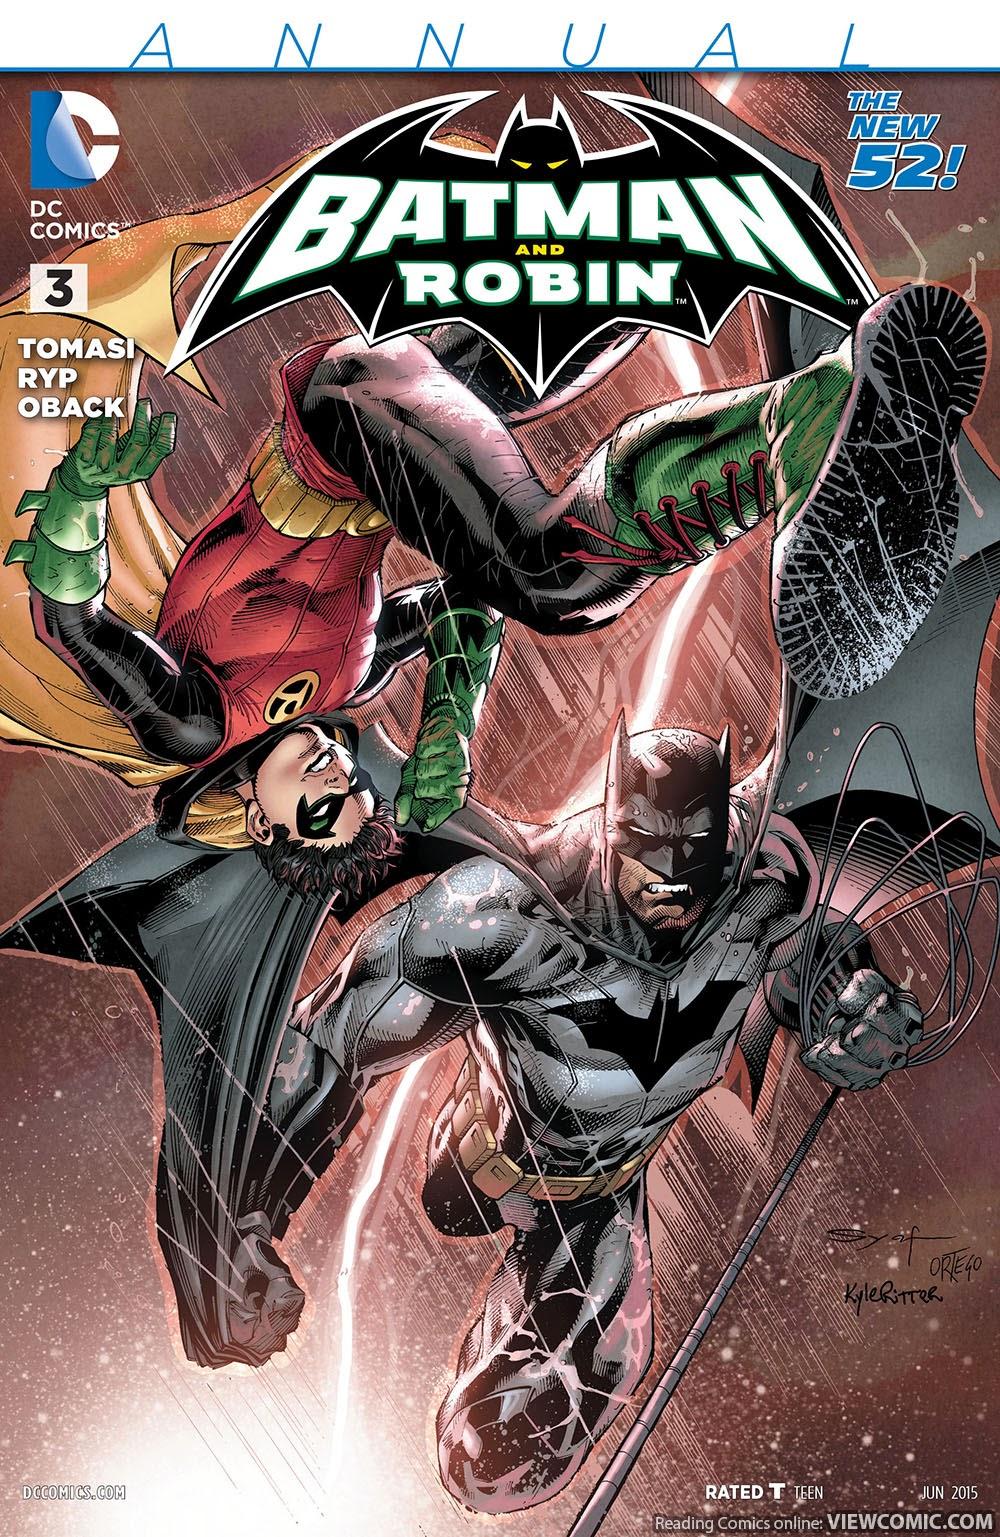 batman and robin viewcomic reading comics online for free 2018